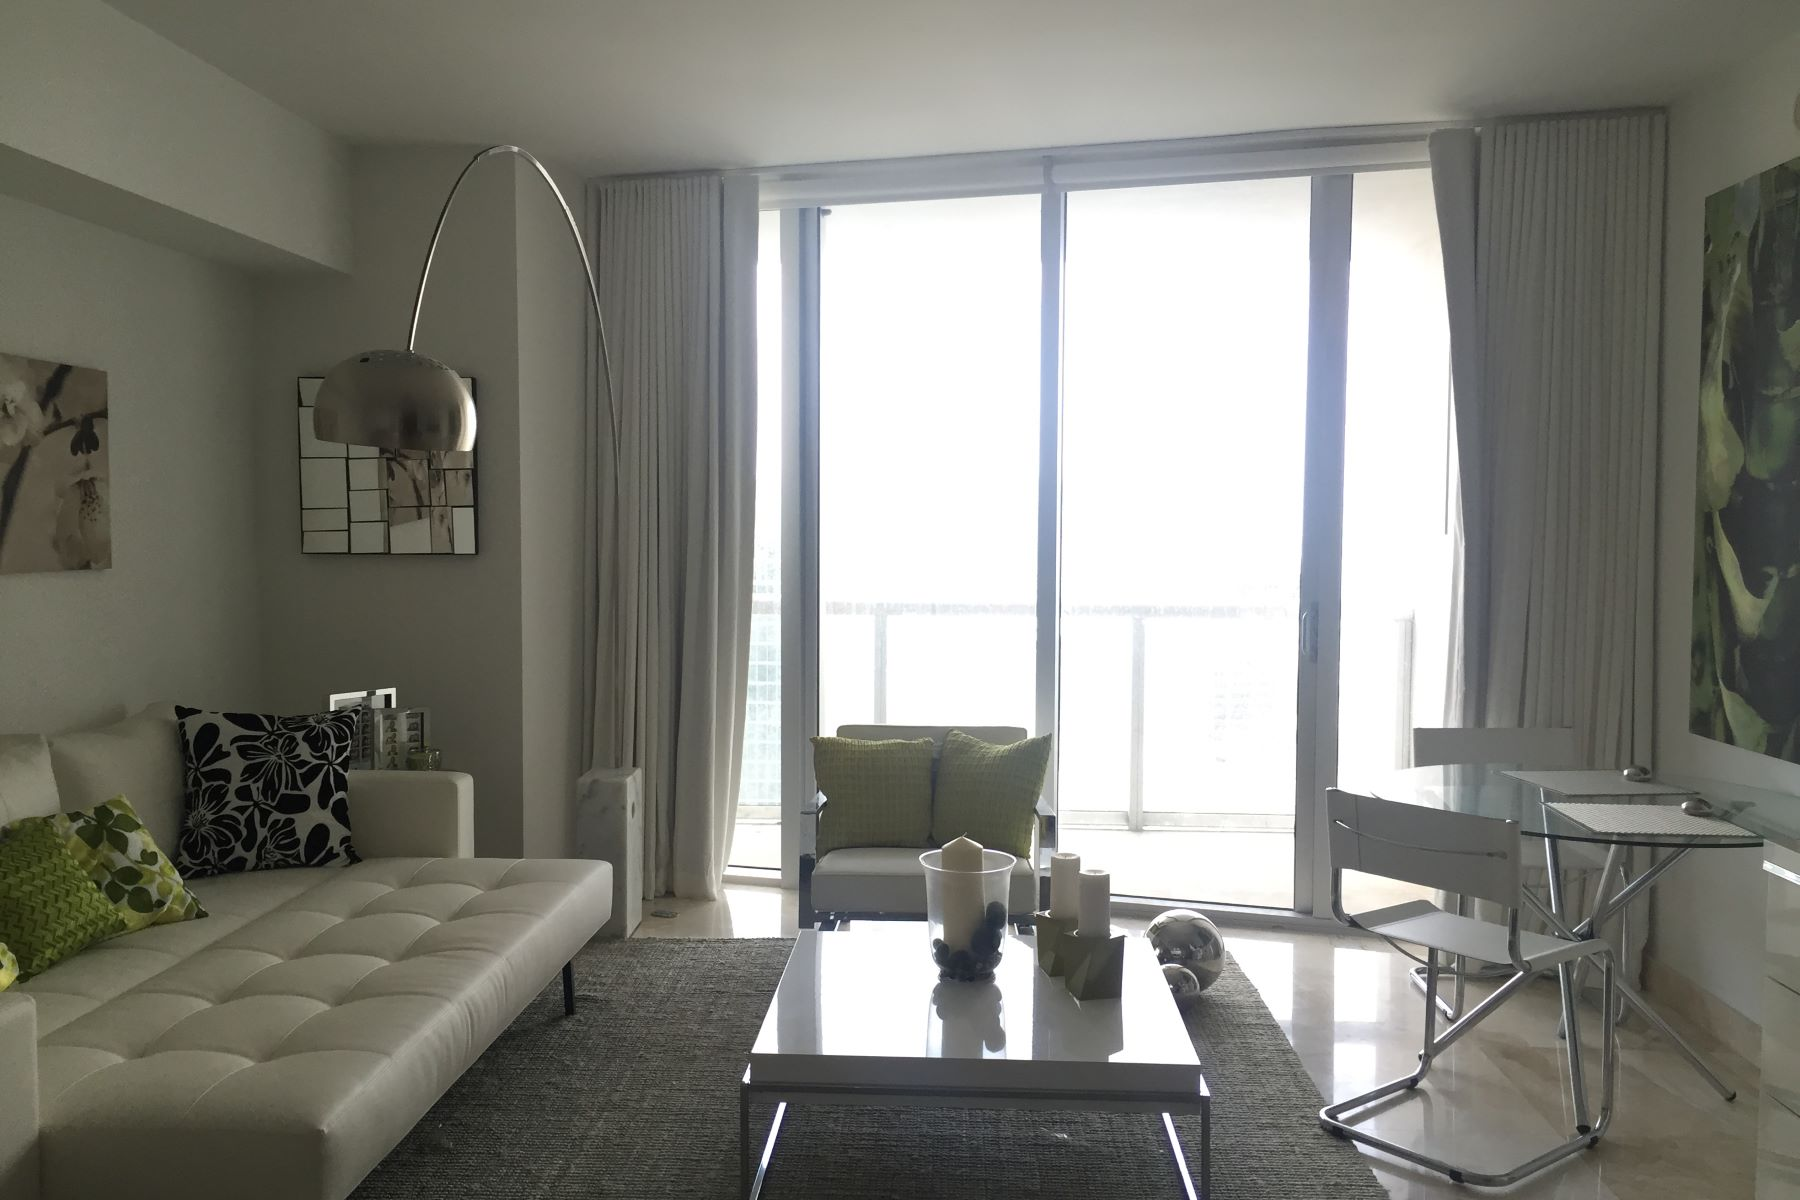 Condominium for Rent at 475 Brickell Ave 475 Brickell Ave 4810 Miami, Florida 33131 United States